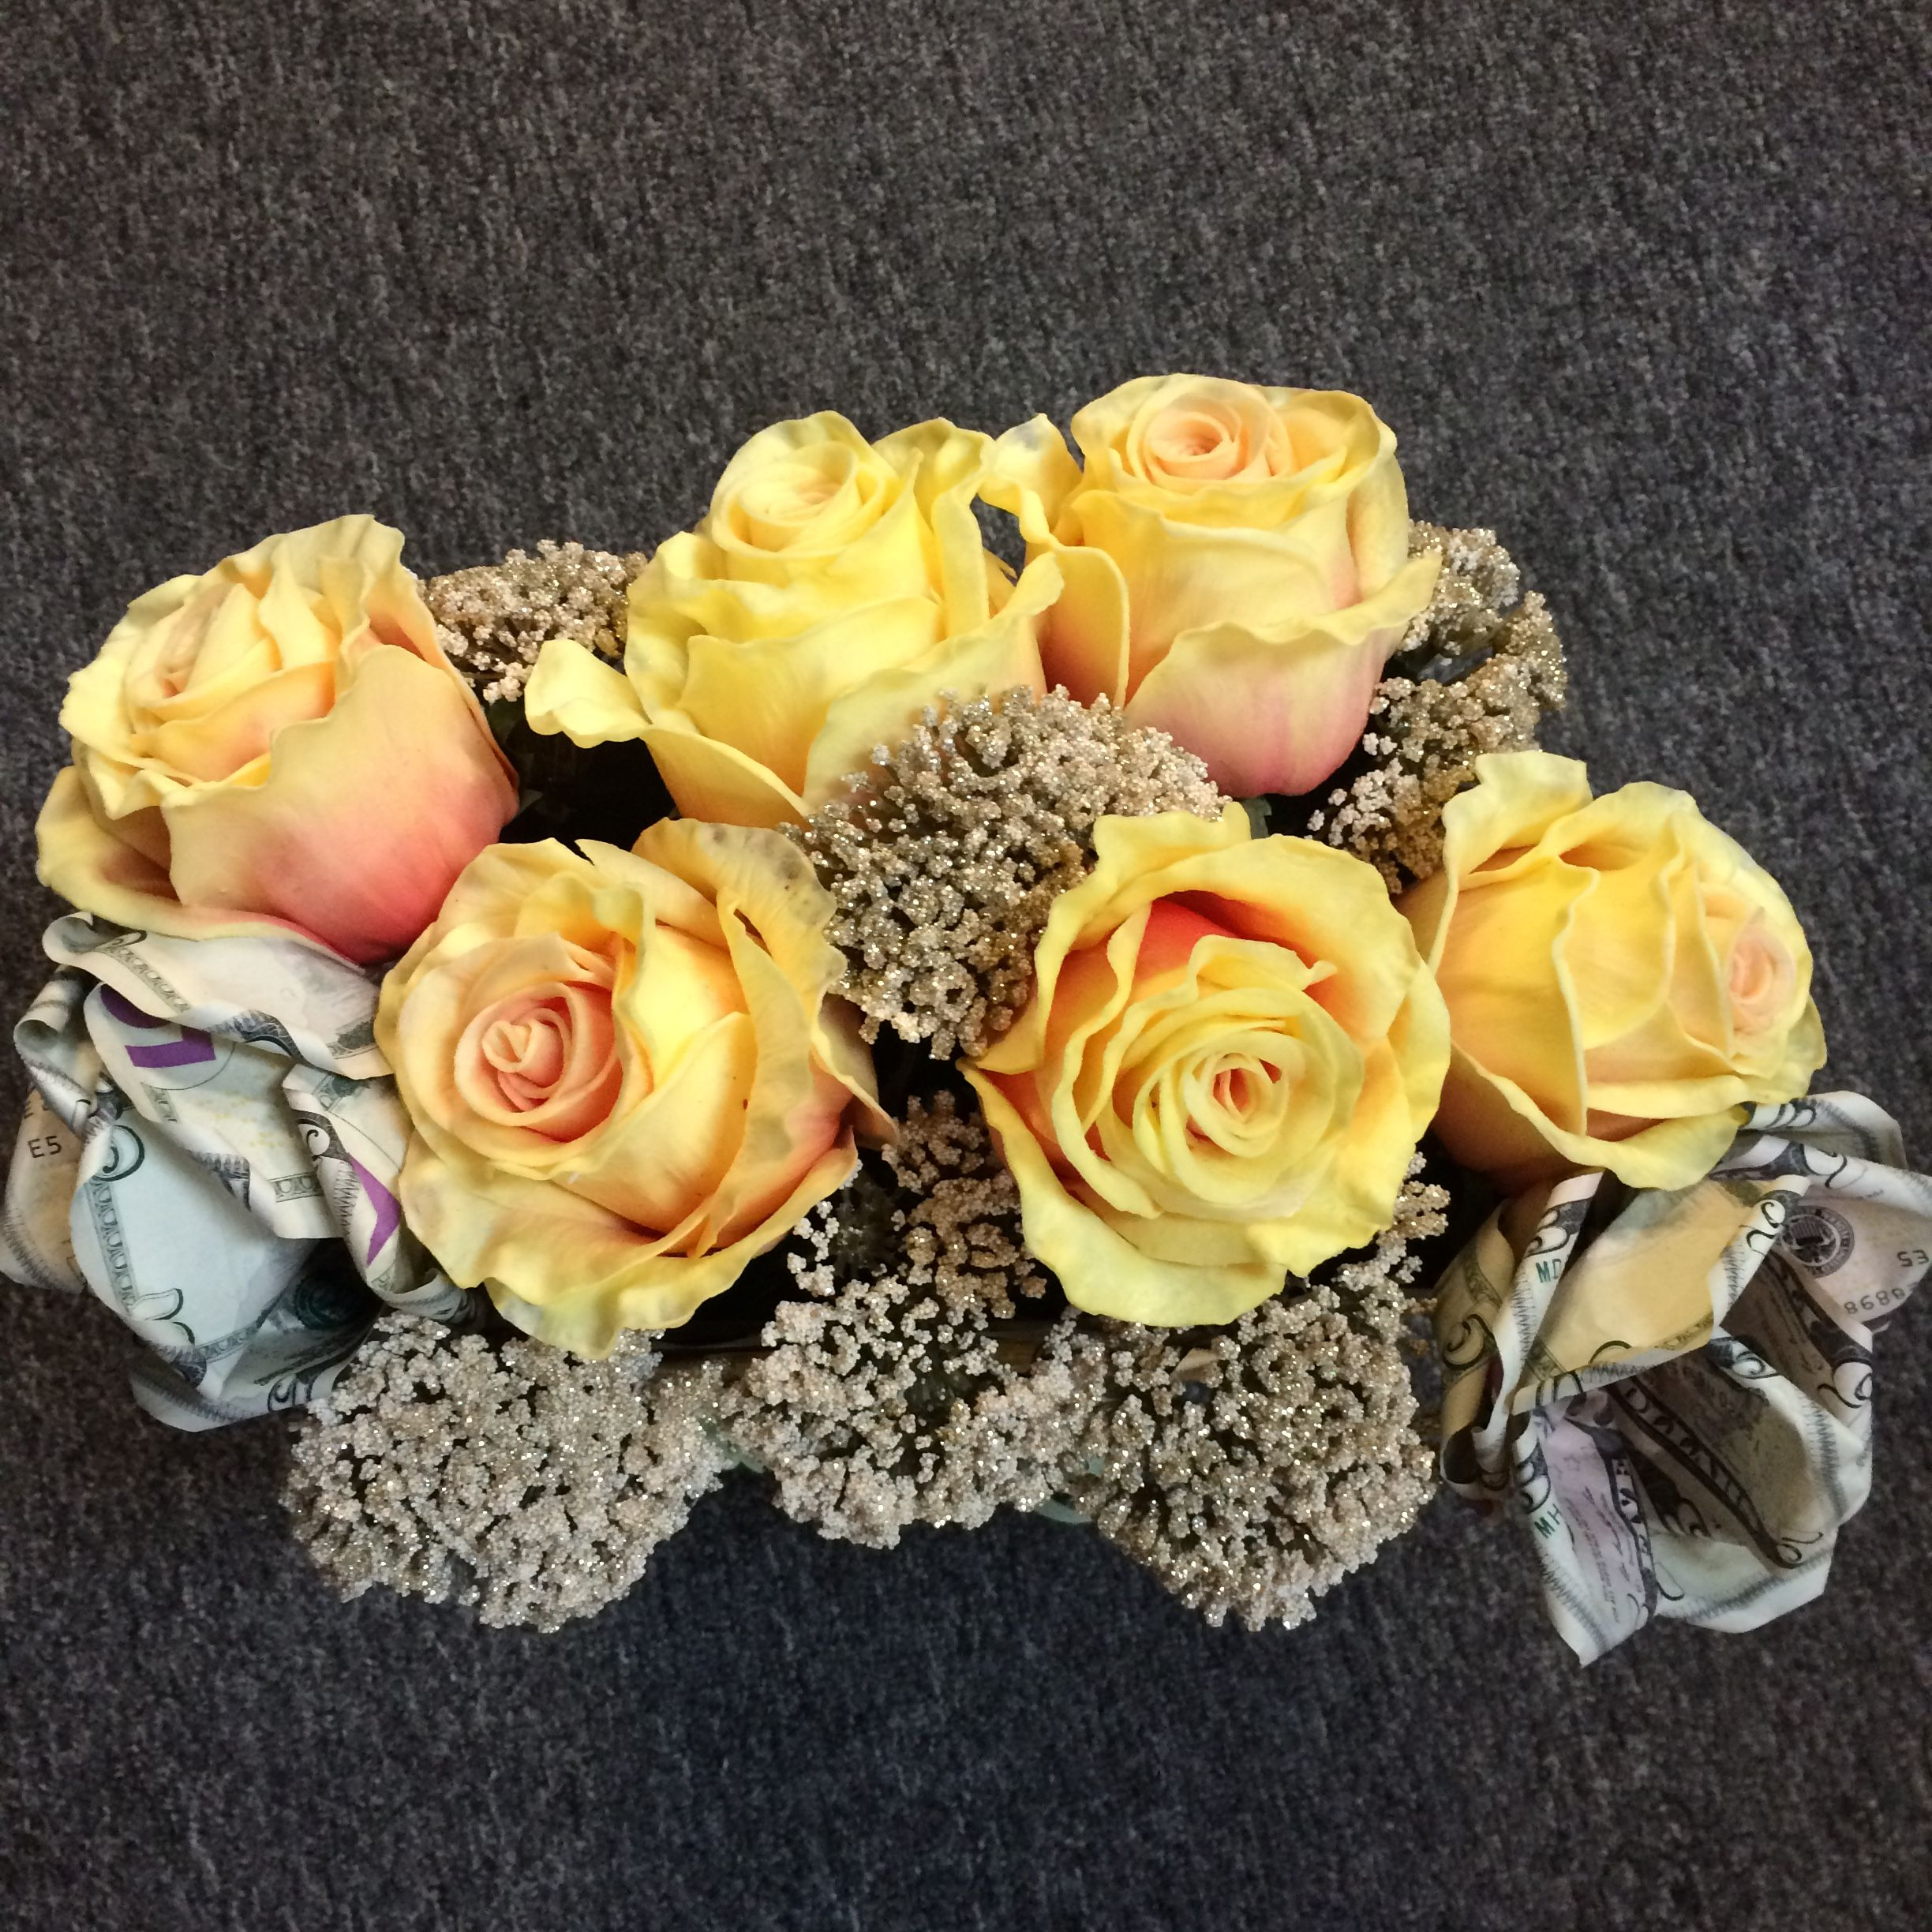 Here Is A Close Up View Of The Bag Of True Touch Yellow Roses